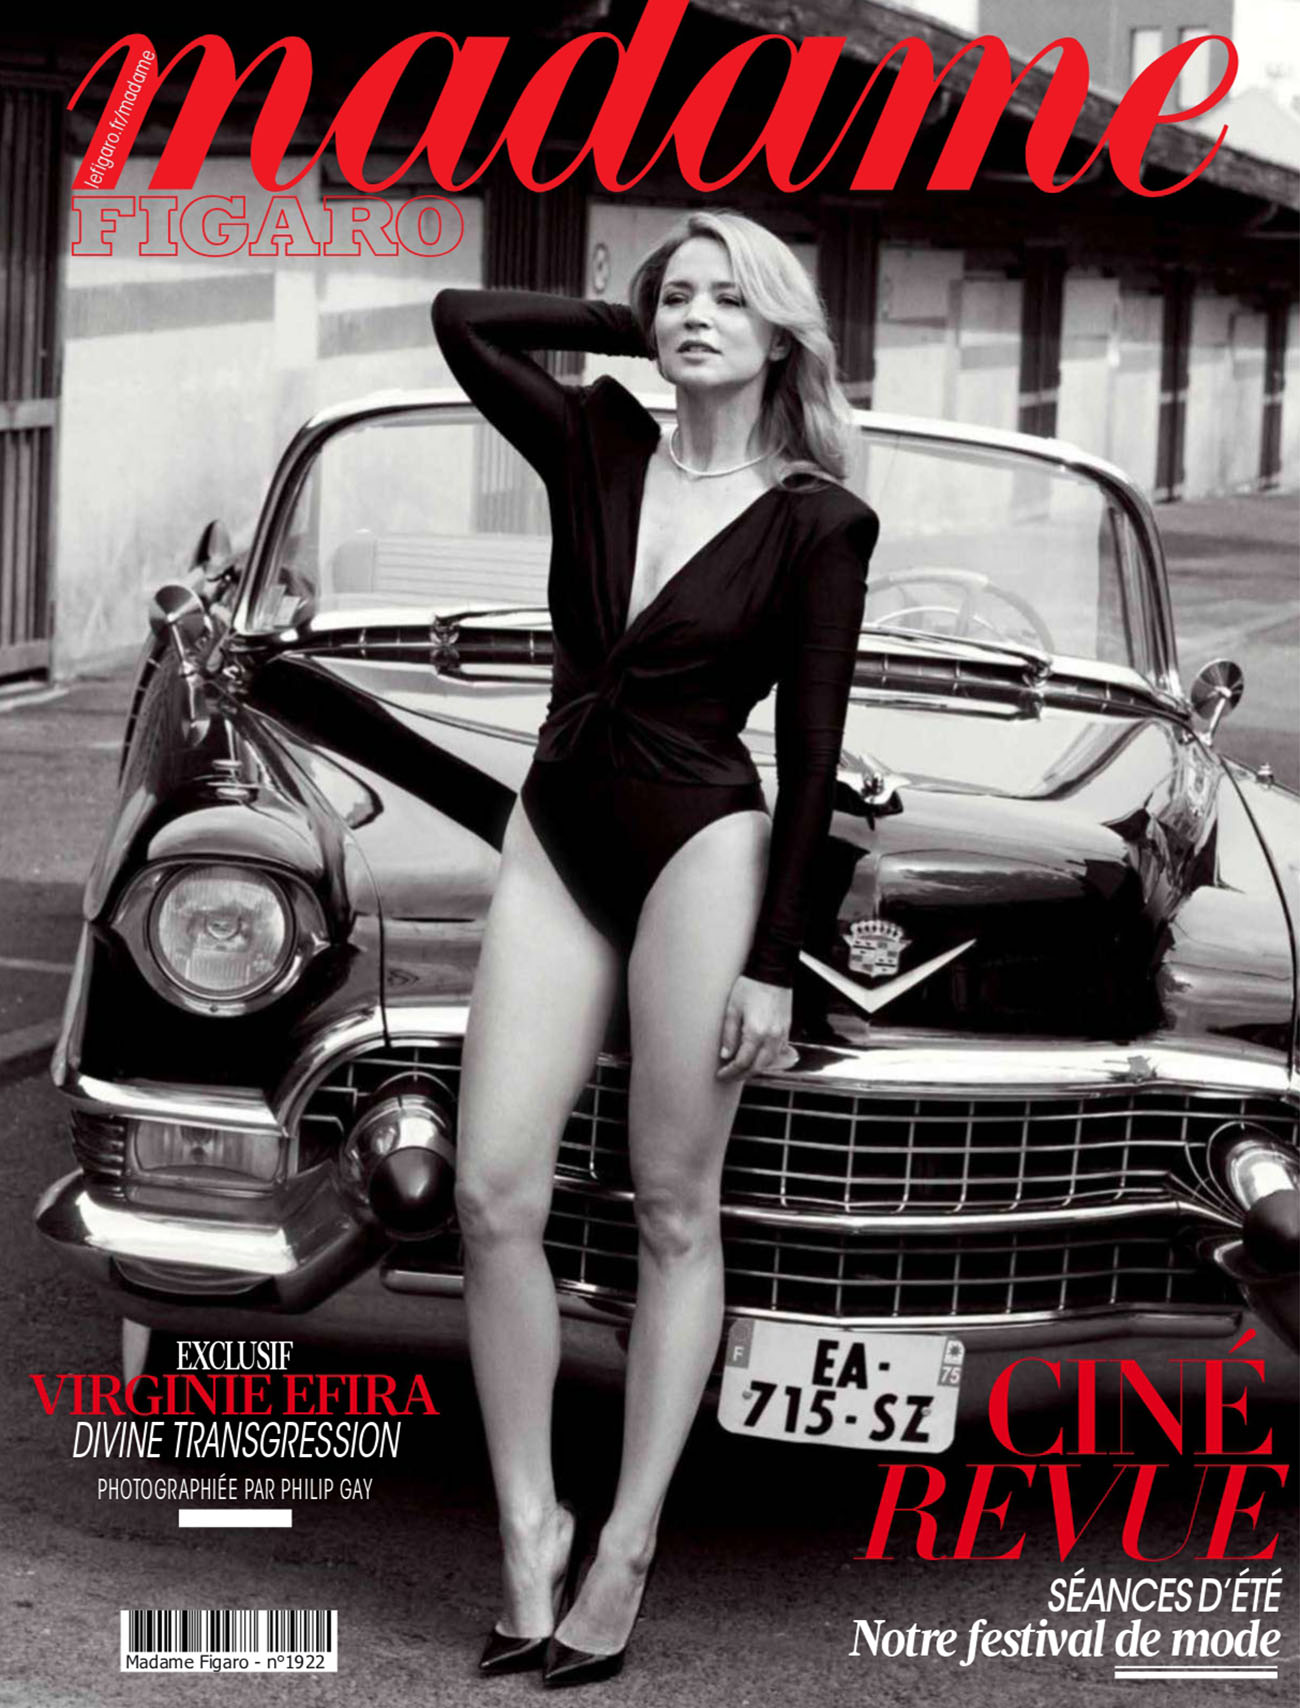 Virginie Efira covers Madame Figaro June 25th, 2021 by Philip Gay